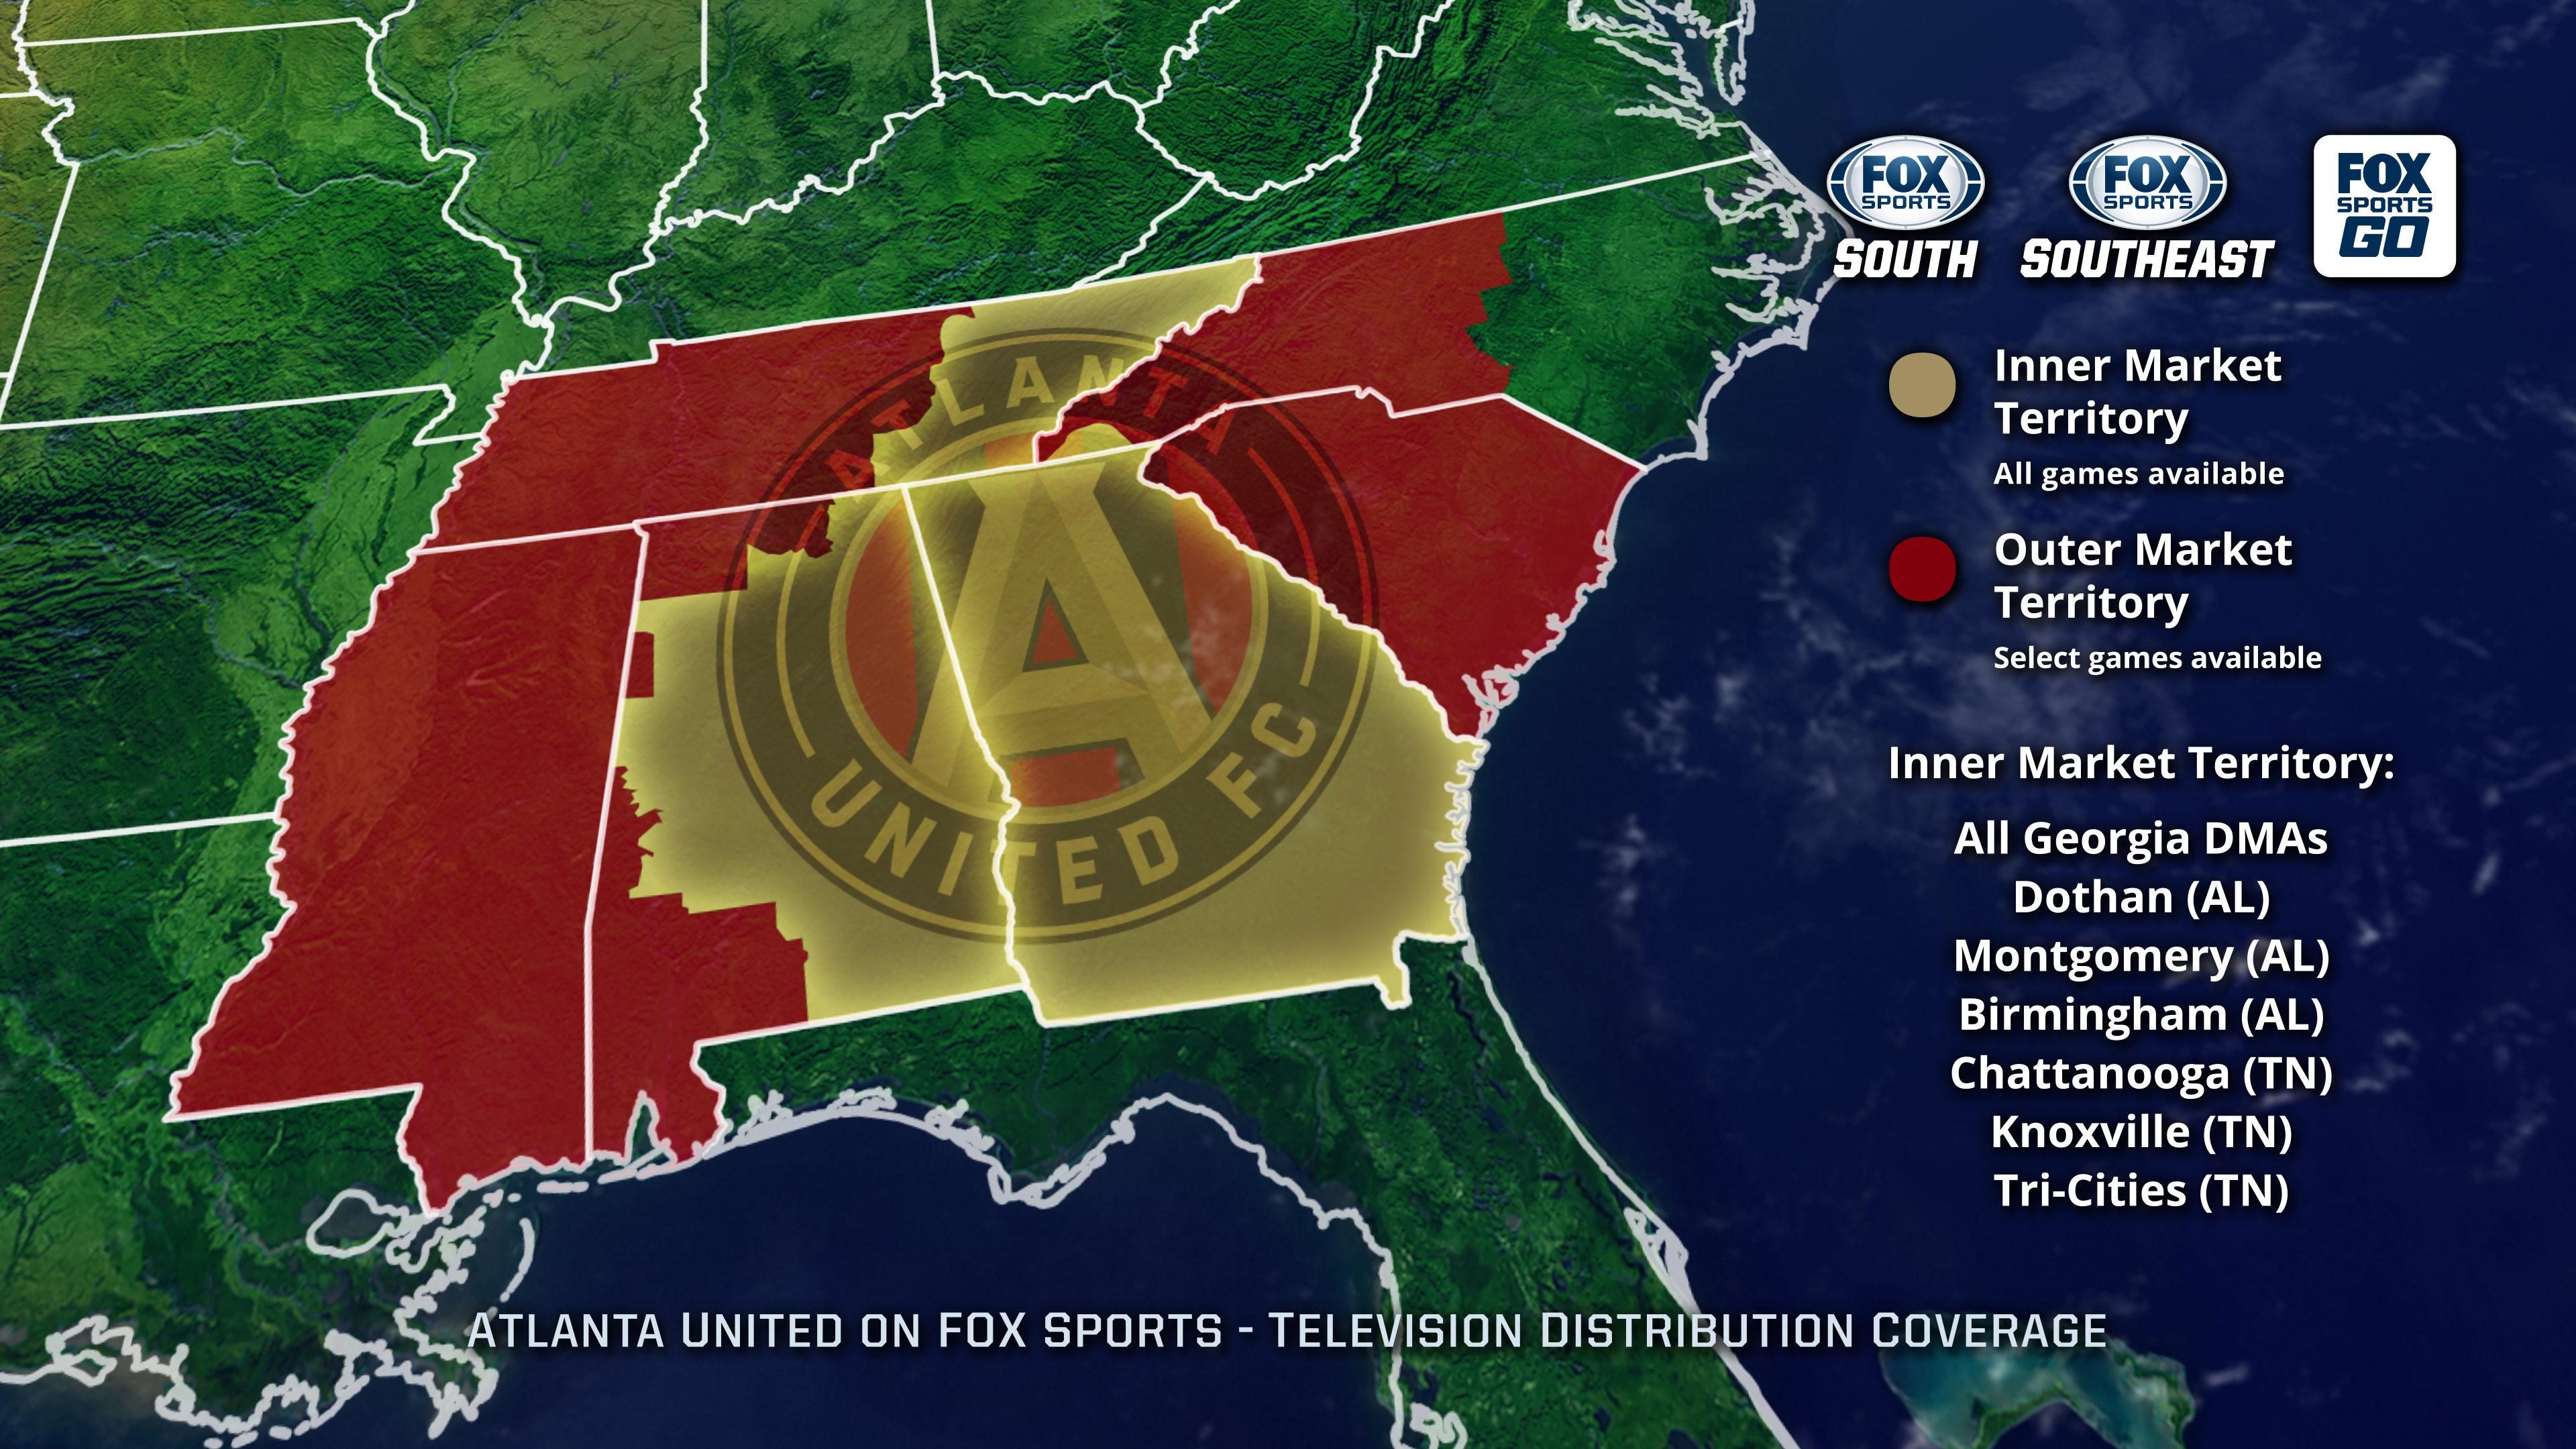 new mls club atlanta united fc finds rsn home with fox sports south  fox sports southeast